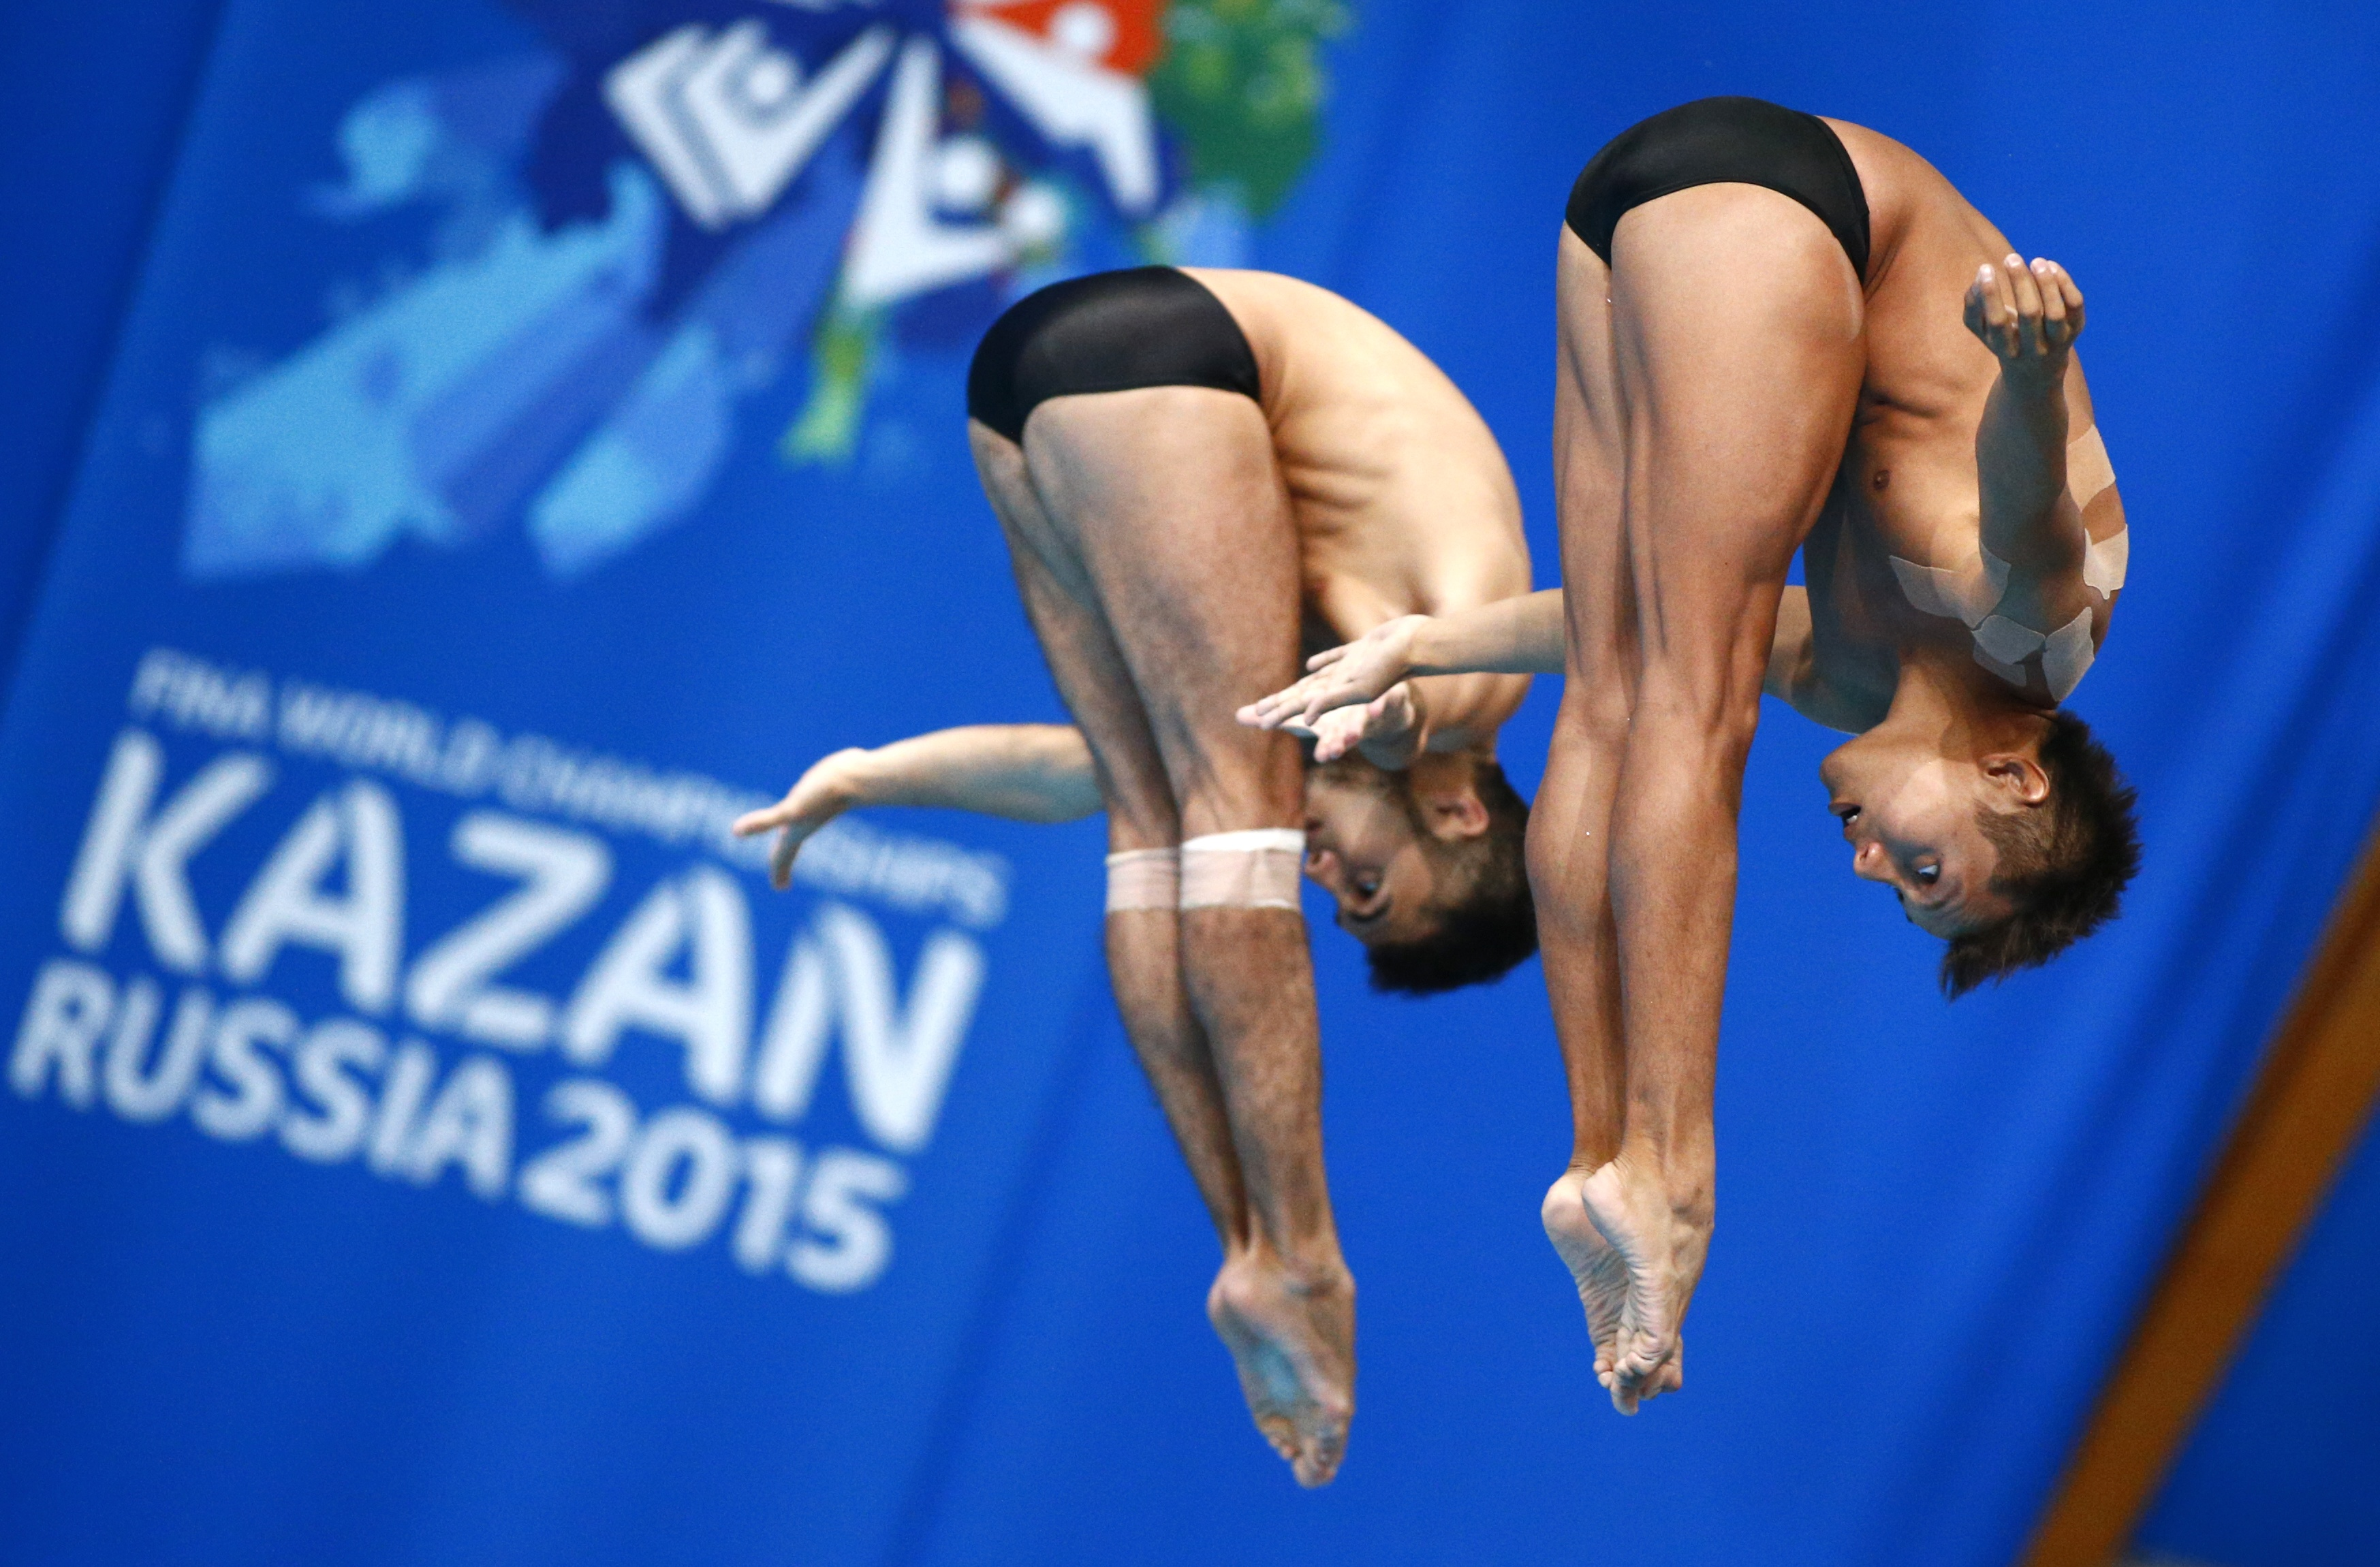 Mexico's silver medalists Ivan Garcia Navarro and German Saul Sanchez compete during the men's synchronised 10m platform diving final at the Swimming World Championships in Kazan, Russia, Sunday, July 26, 2015. (AP Photo / Sergei Grits)